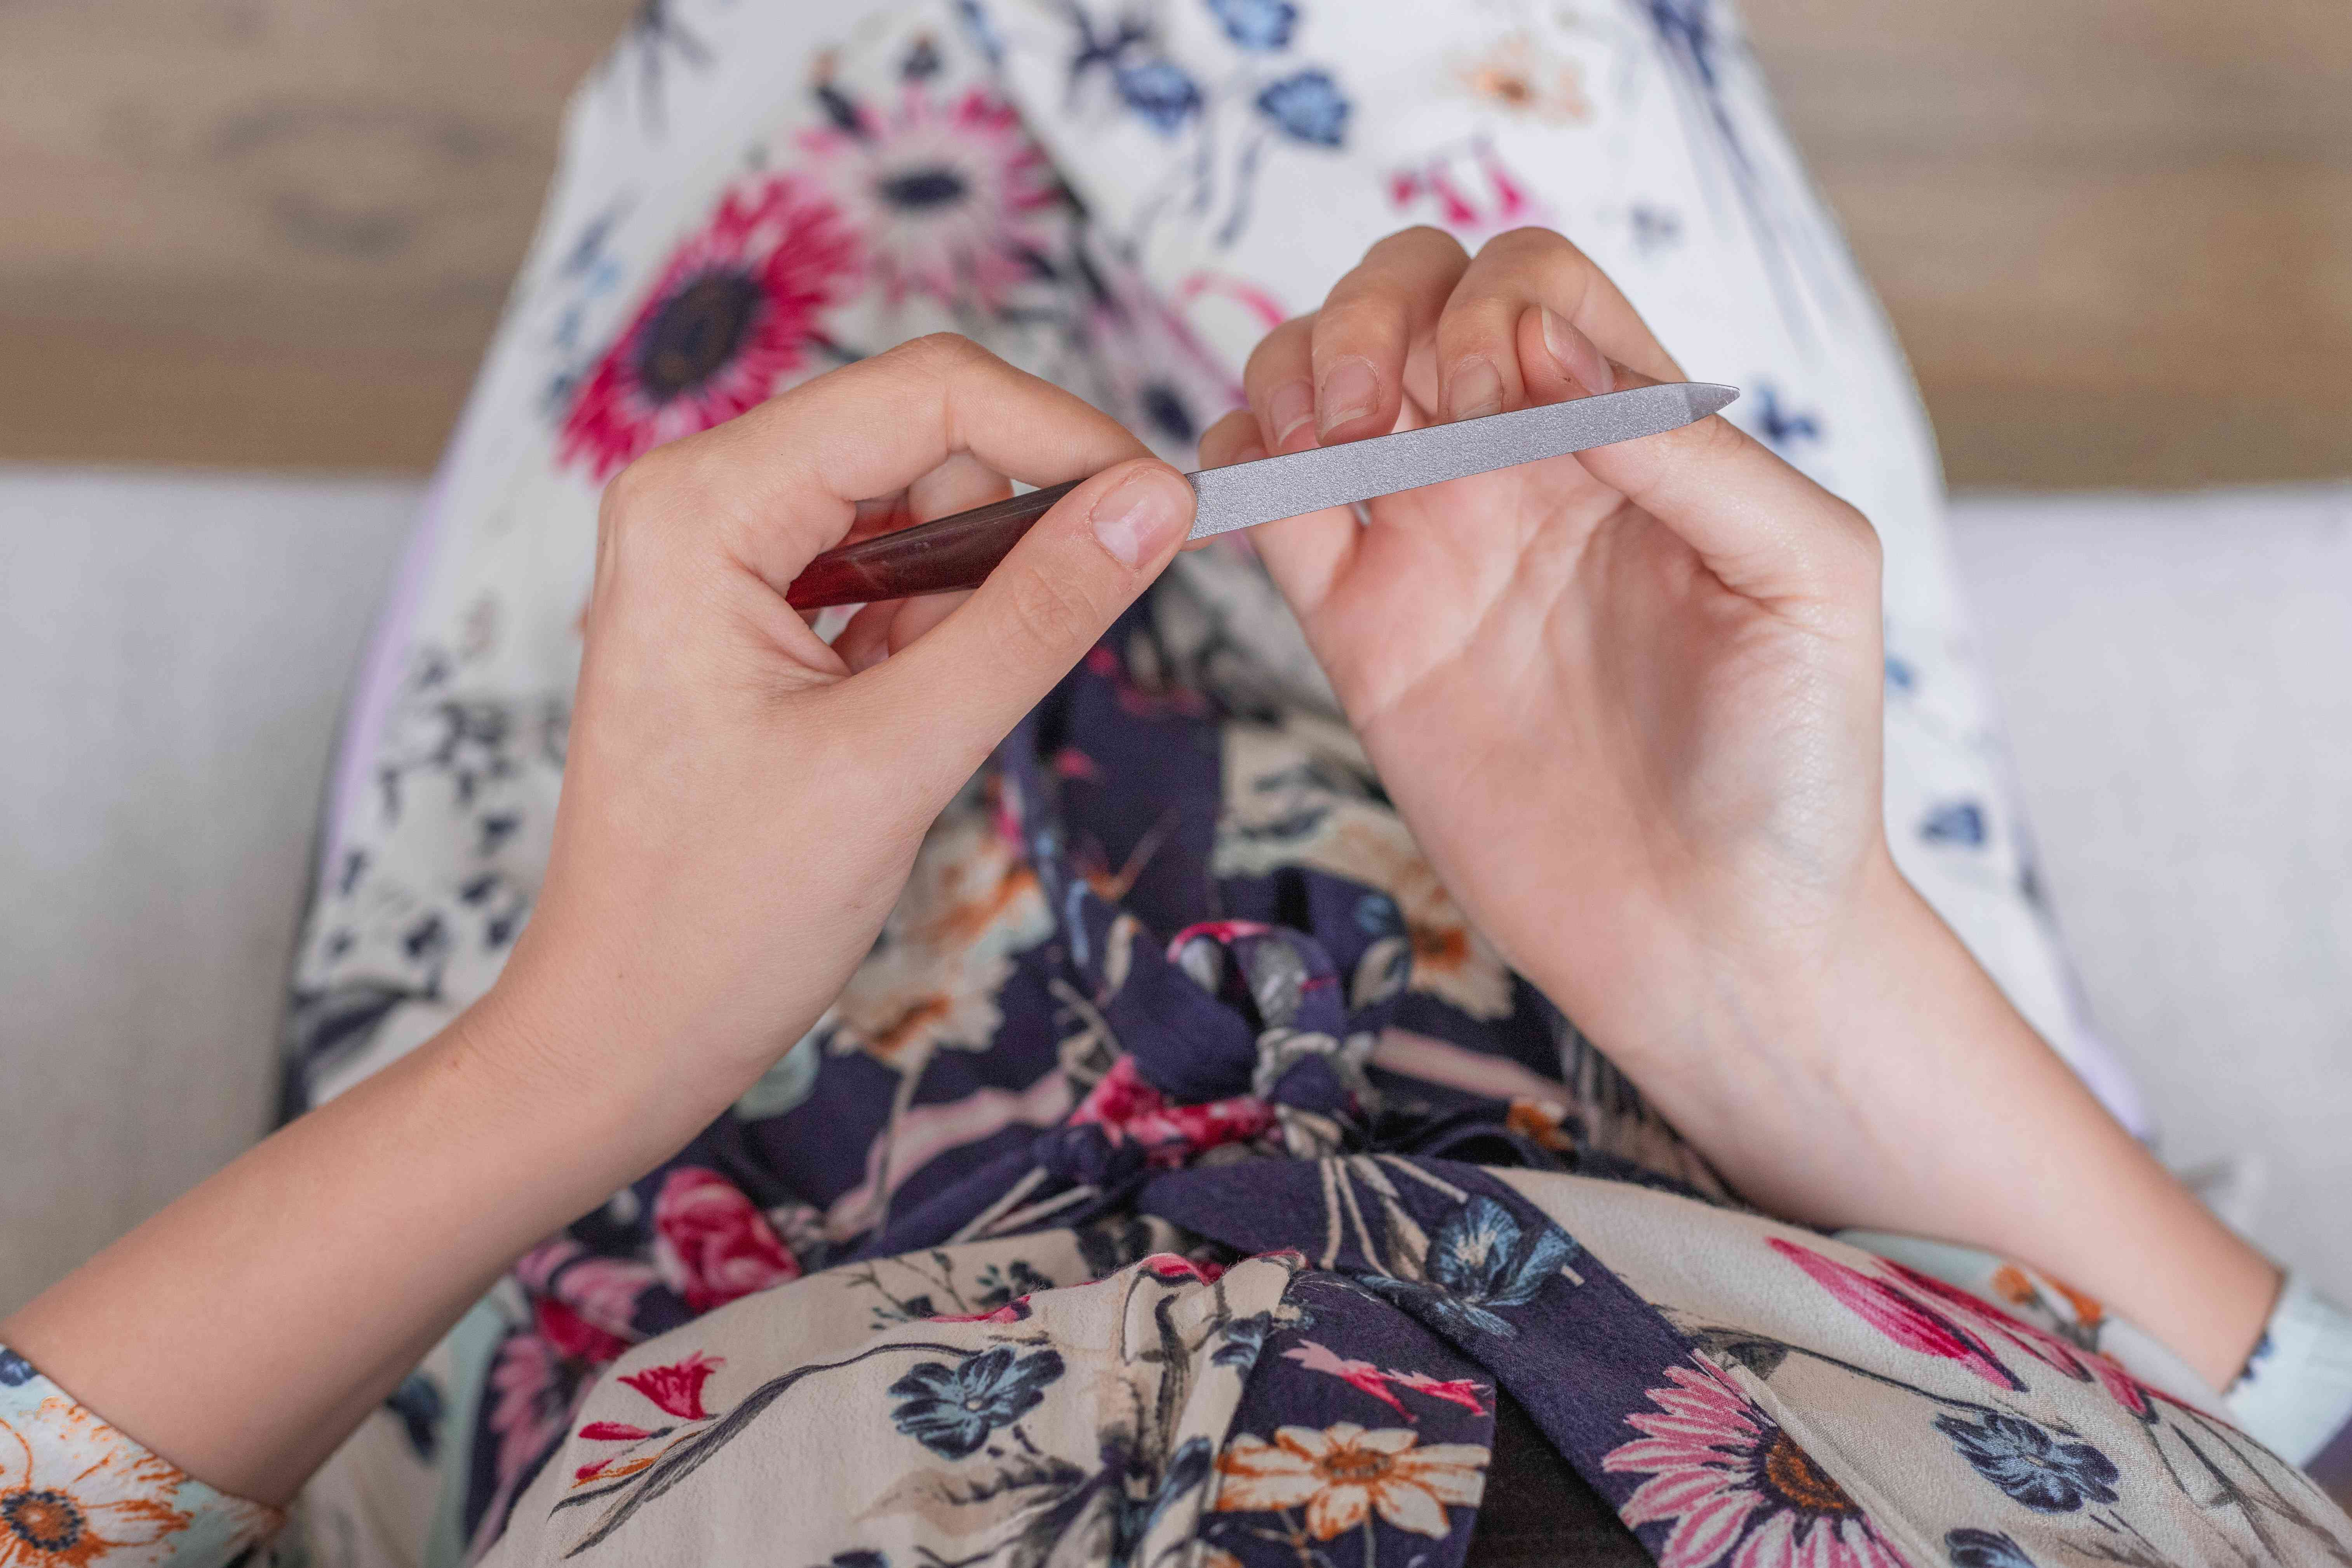 over shoulder shot of person in floral dress filing nails with metal file